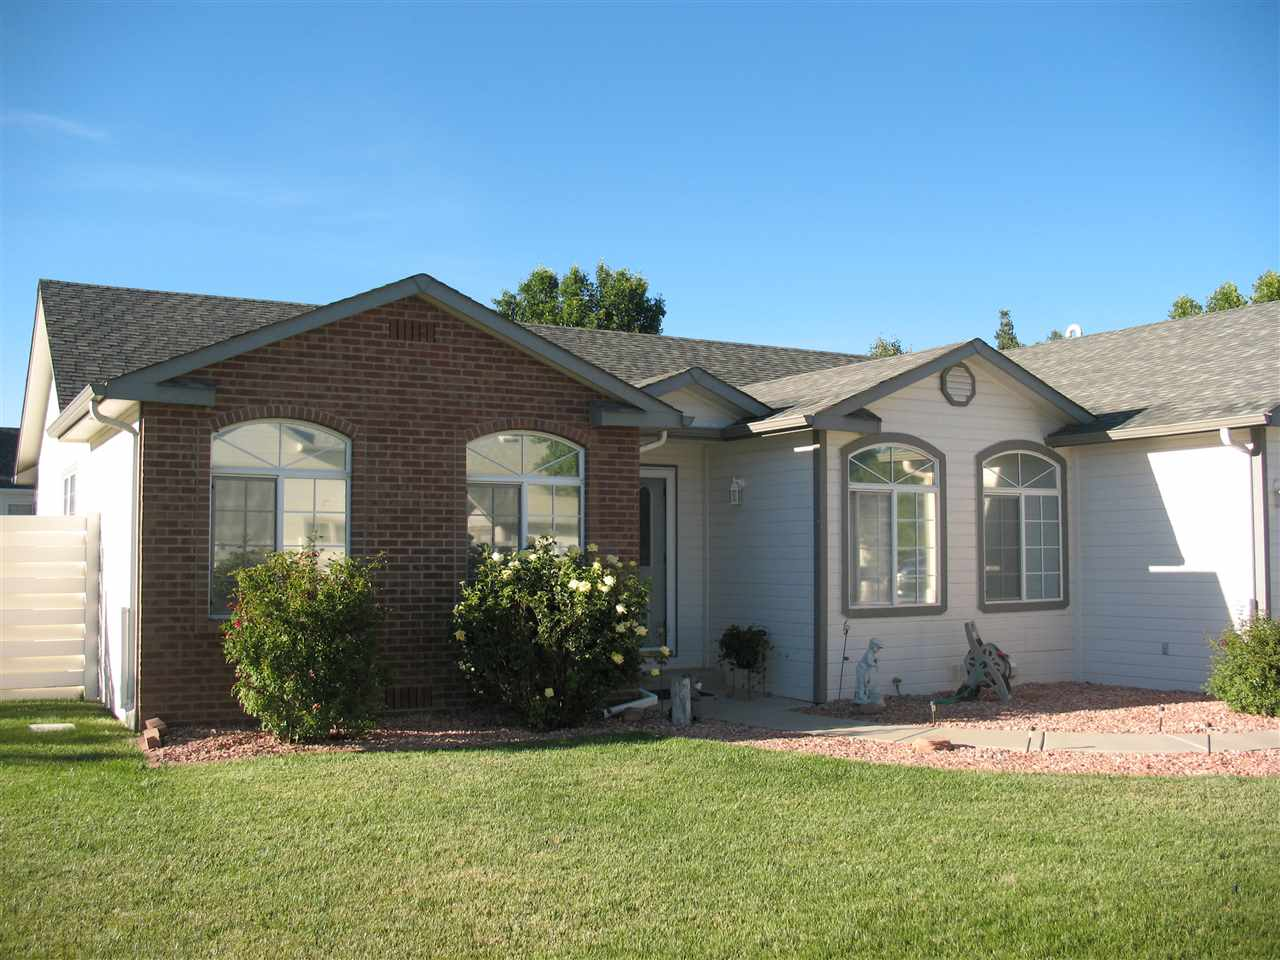 3158 Forrest Way, Grand Junction, CO 81504